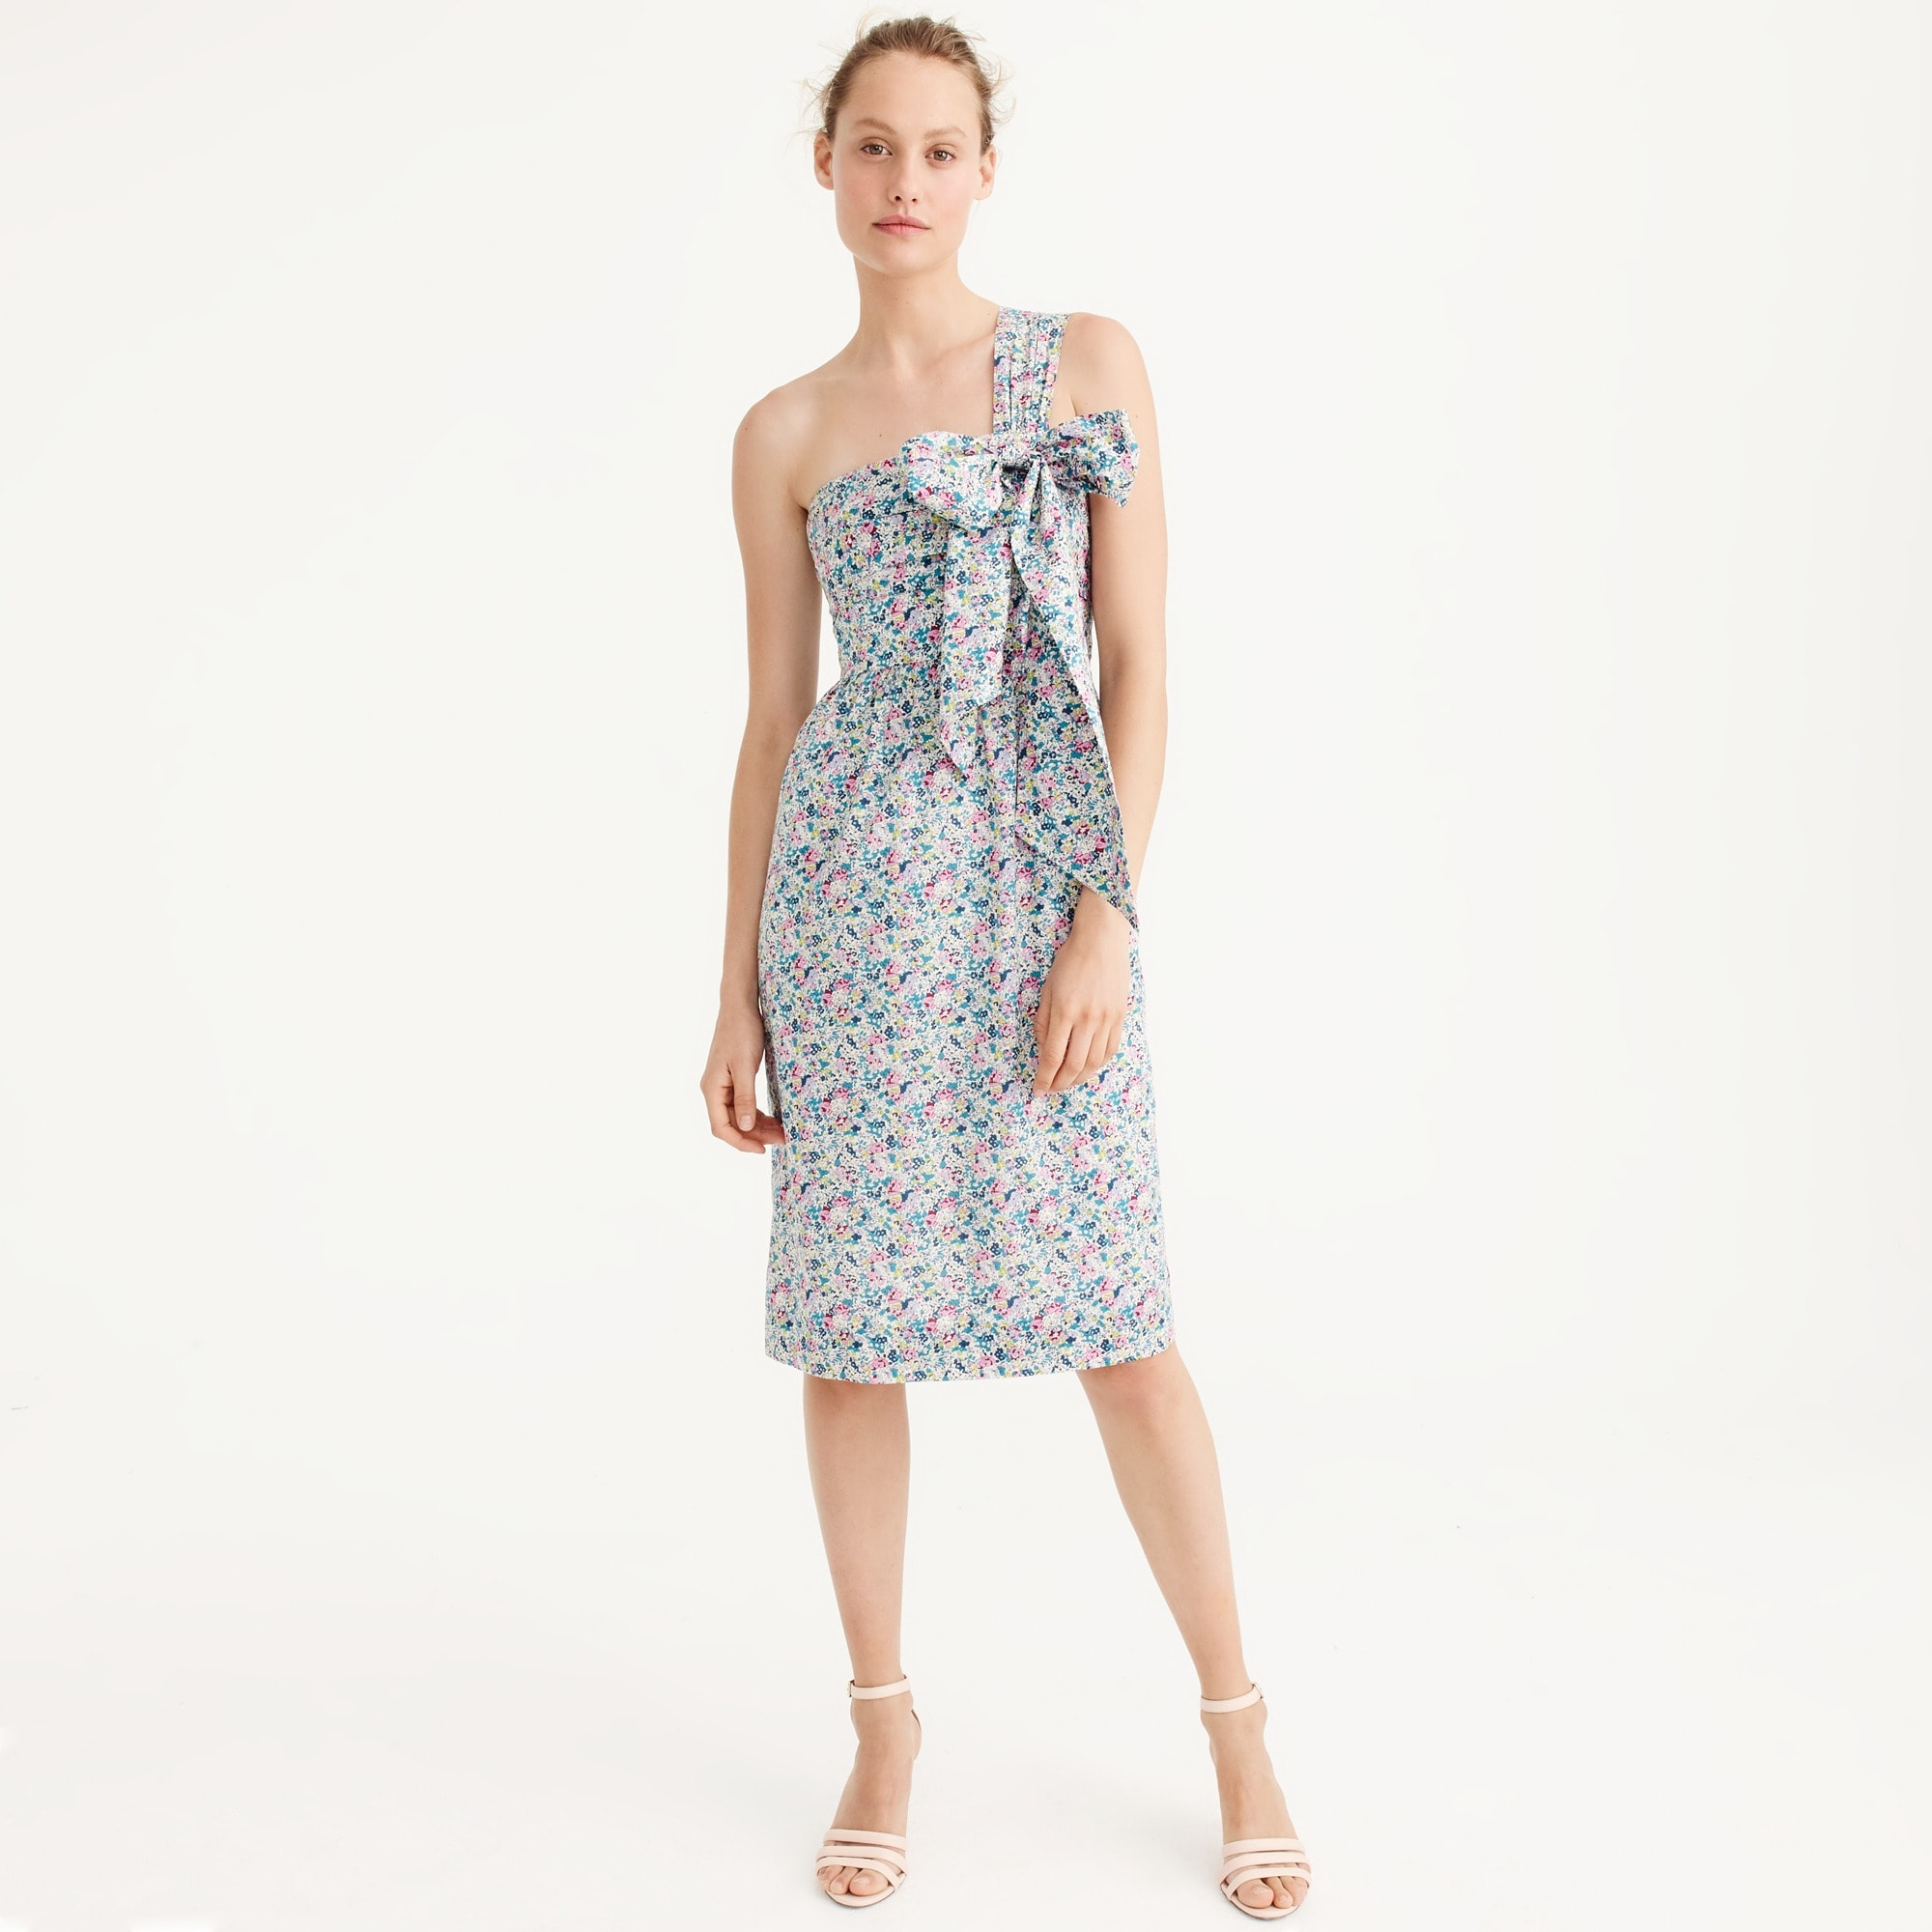 one-shoulder tie dress in liberty® claire-aude floral : women ready to party collection